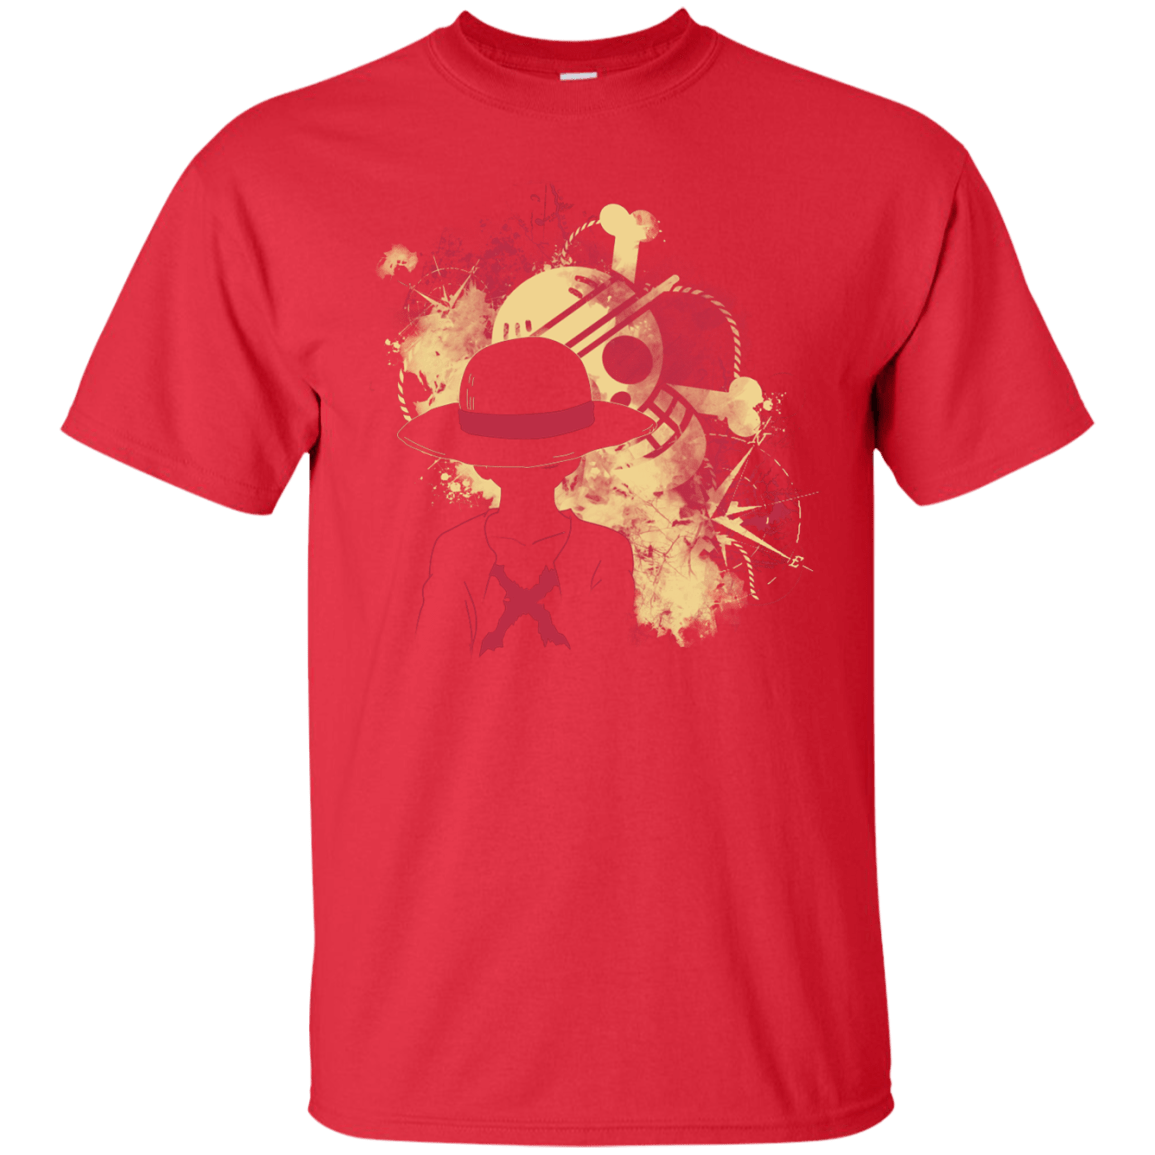 T-Shirts Red / S Luffy 2018 T-Shirt